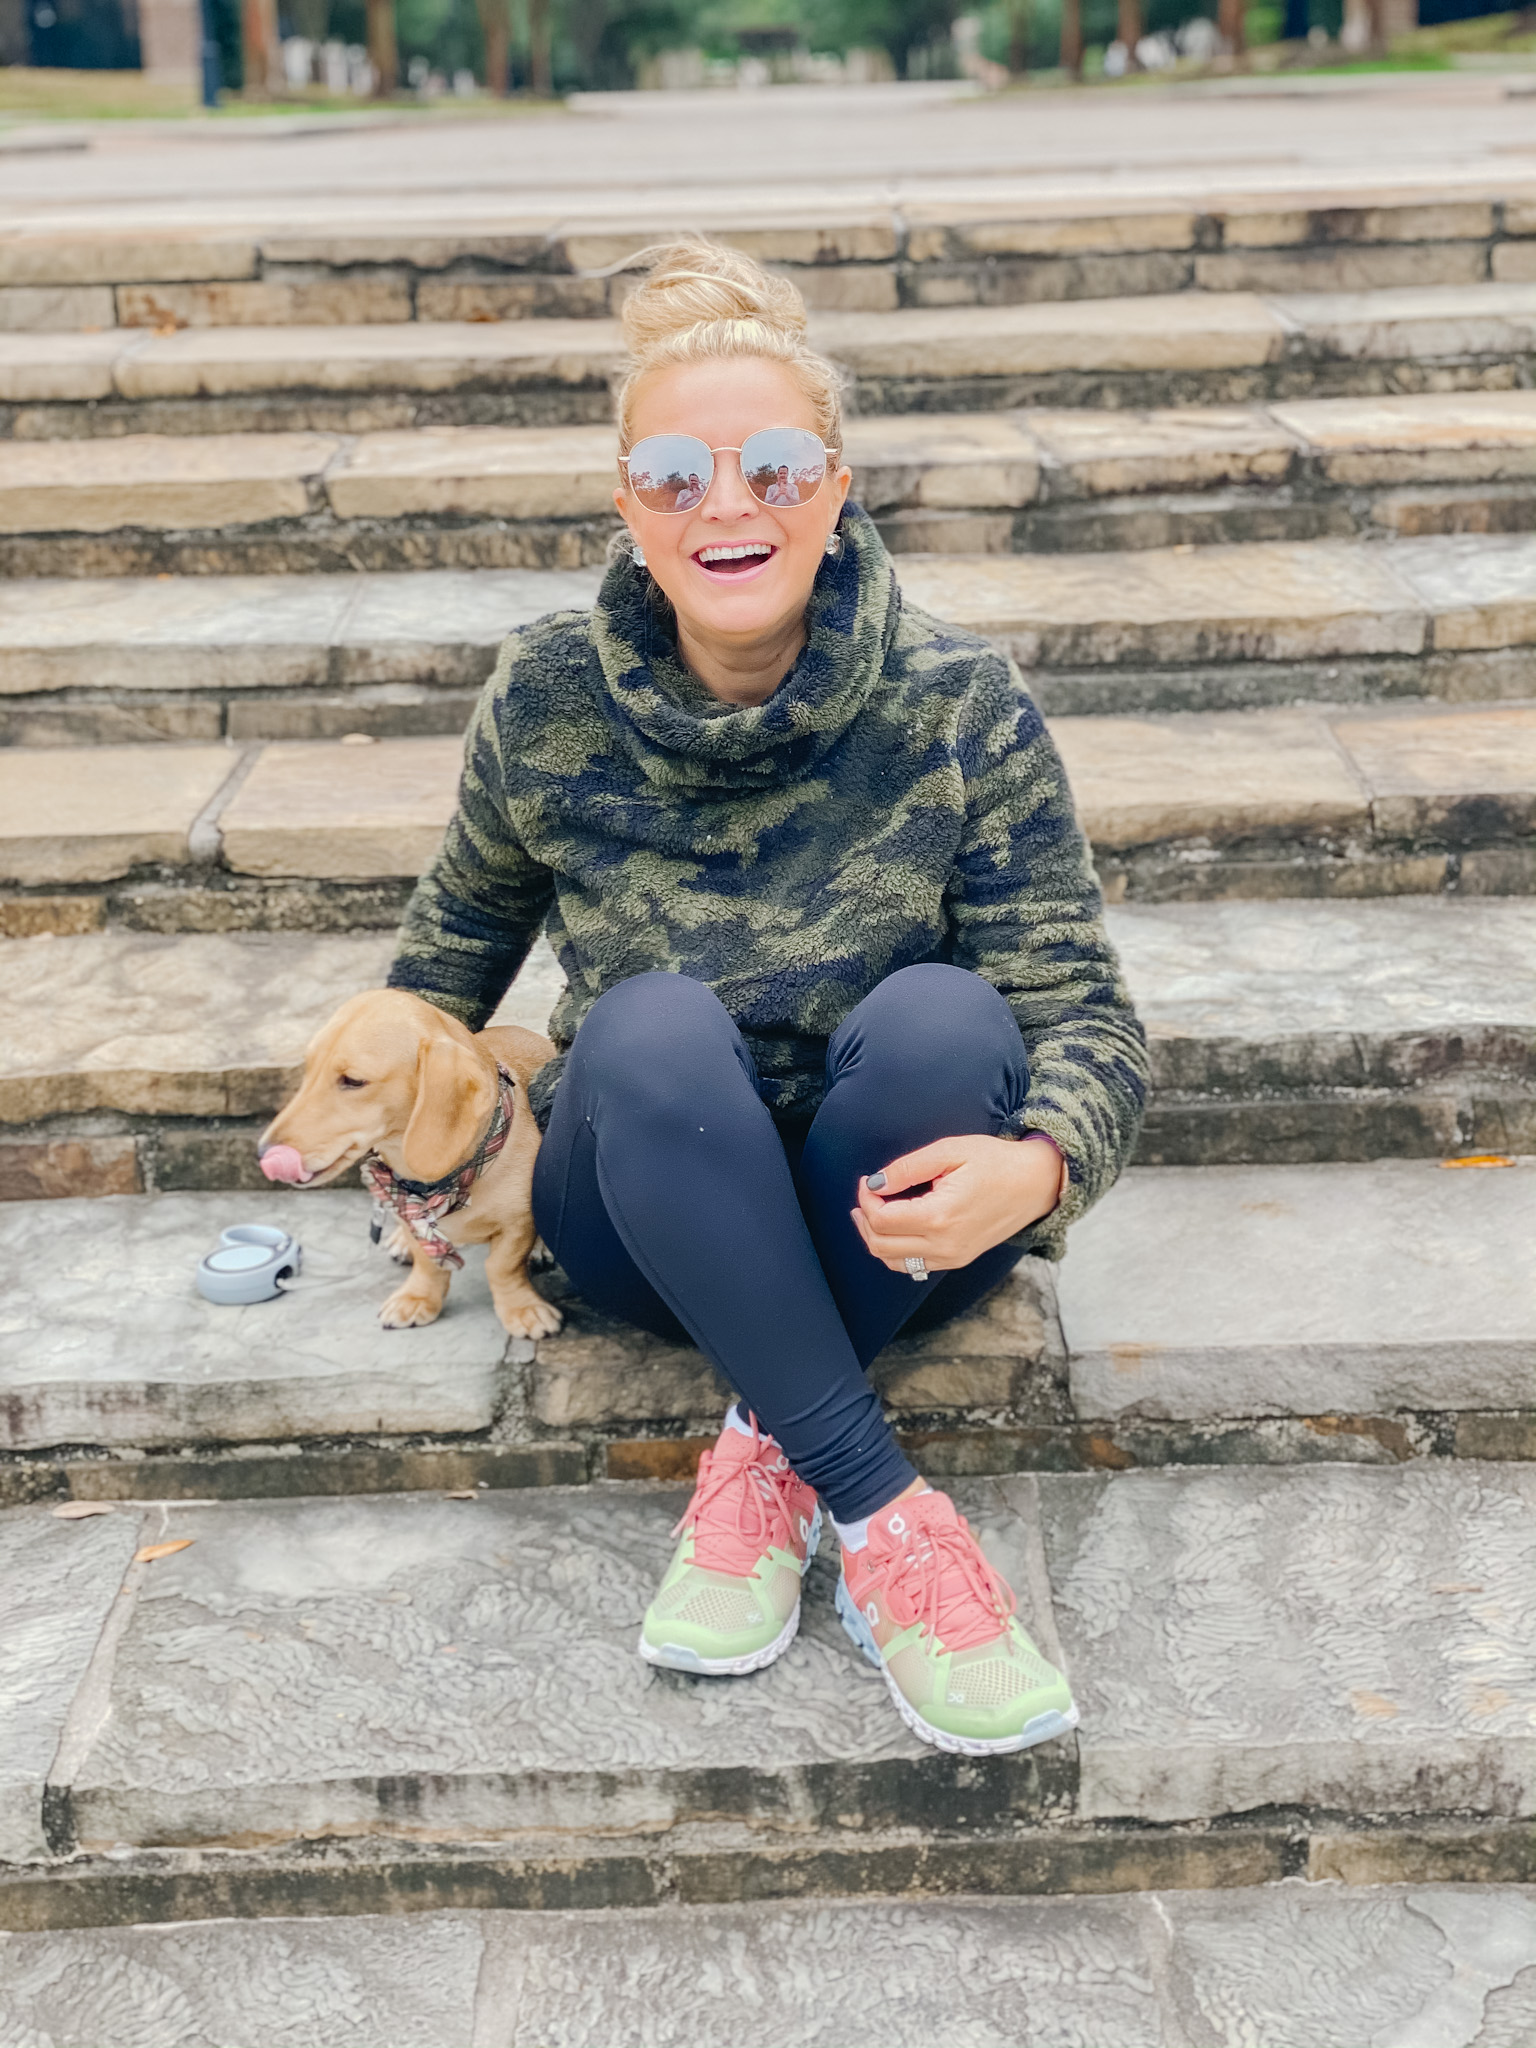 On Cloud Running Shoes by popular Houston fashion blog, Fancy Ashley: image of a woman sitting on some stone steps with her dog and wearing Shoes Cloudflow Running Shoes, Zella leggings, Zella camo fleece pullover, and Quay Australia sunglasses.